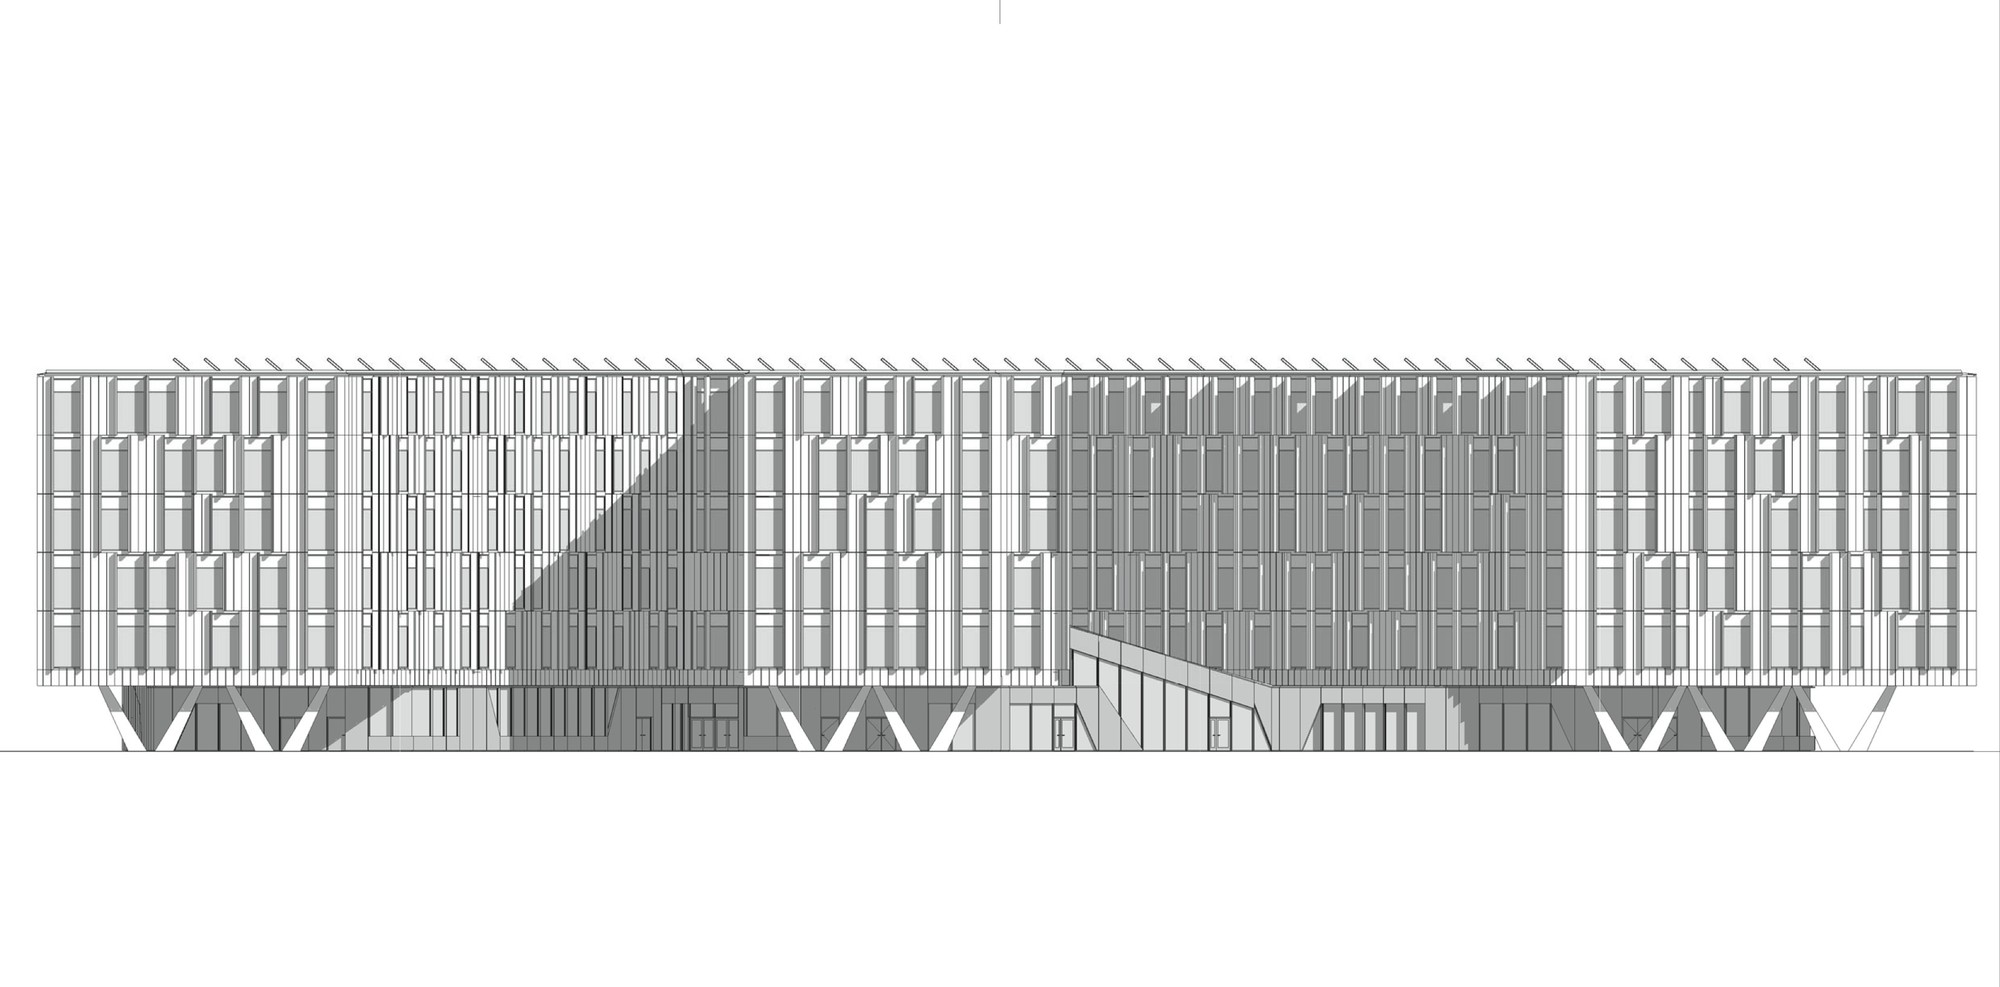 Elevation D Un Plan : Gallery of un city xn